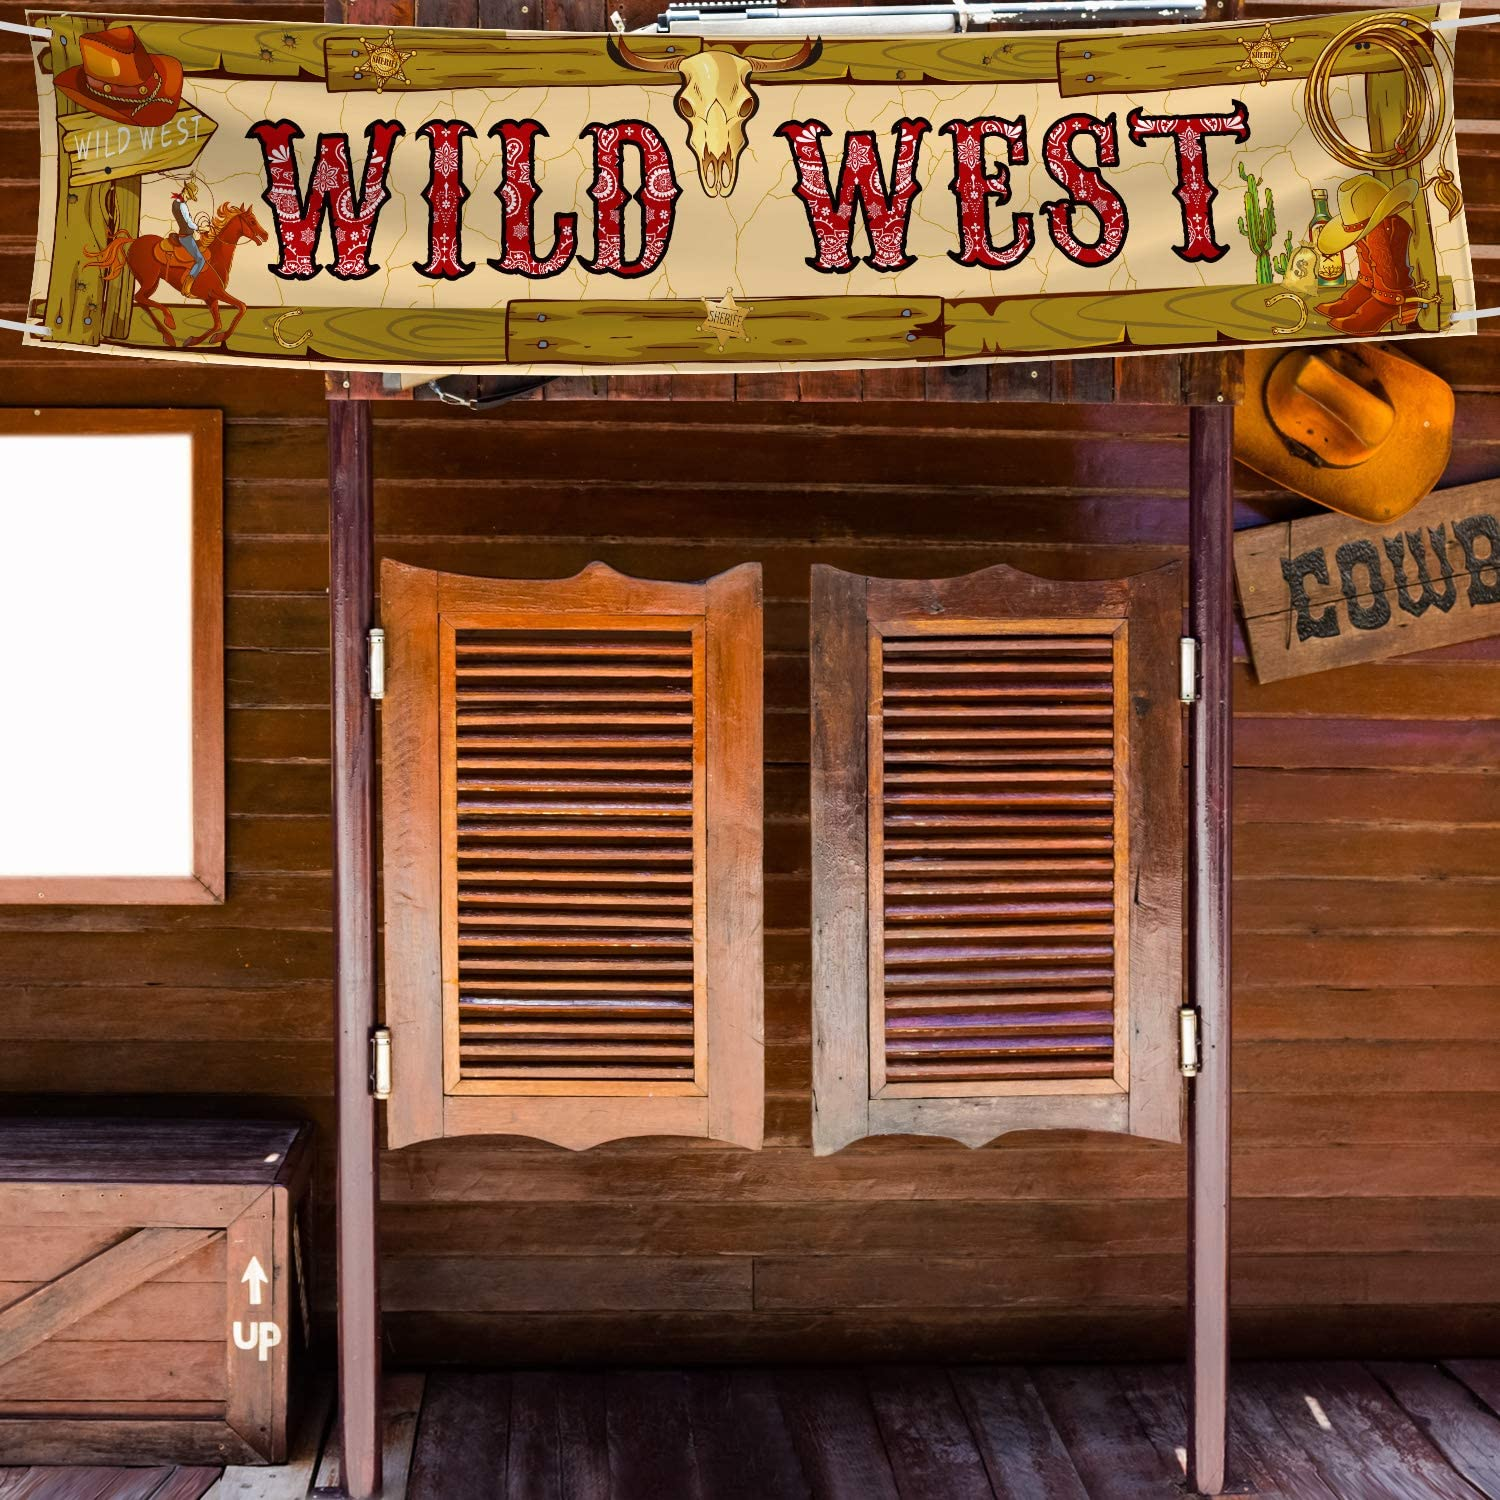 Cowboy Party Decorations Cowboy Banner Western Scene Setters for Cowboy Decorations Party Wooden House Barn Banner Western Party Supplies Wild West Backdrop Background 15.7 x 72 Inch